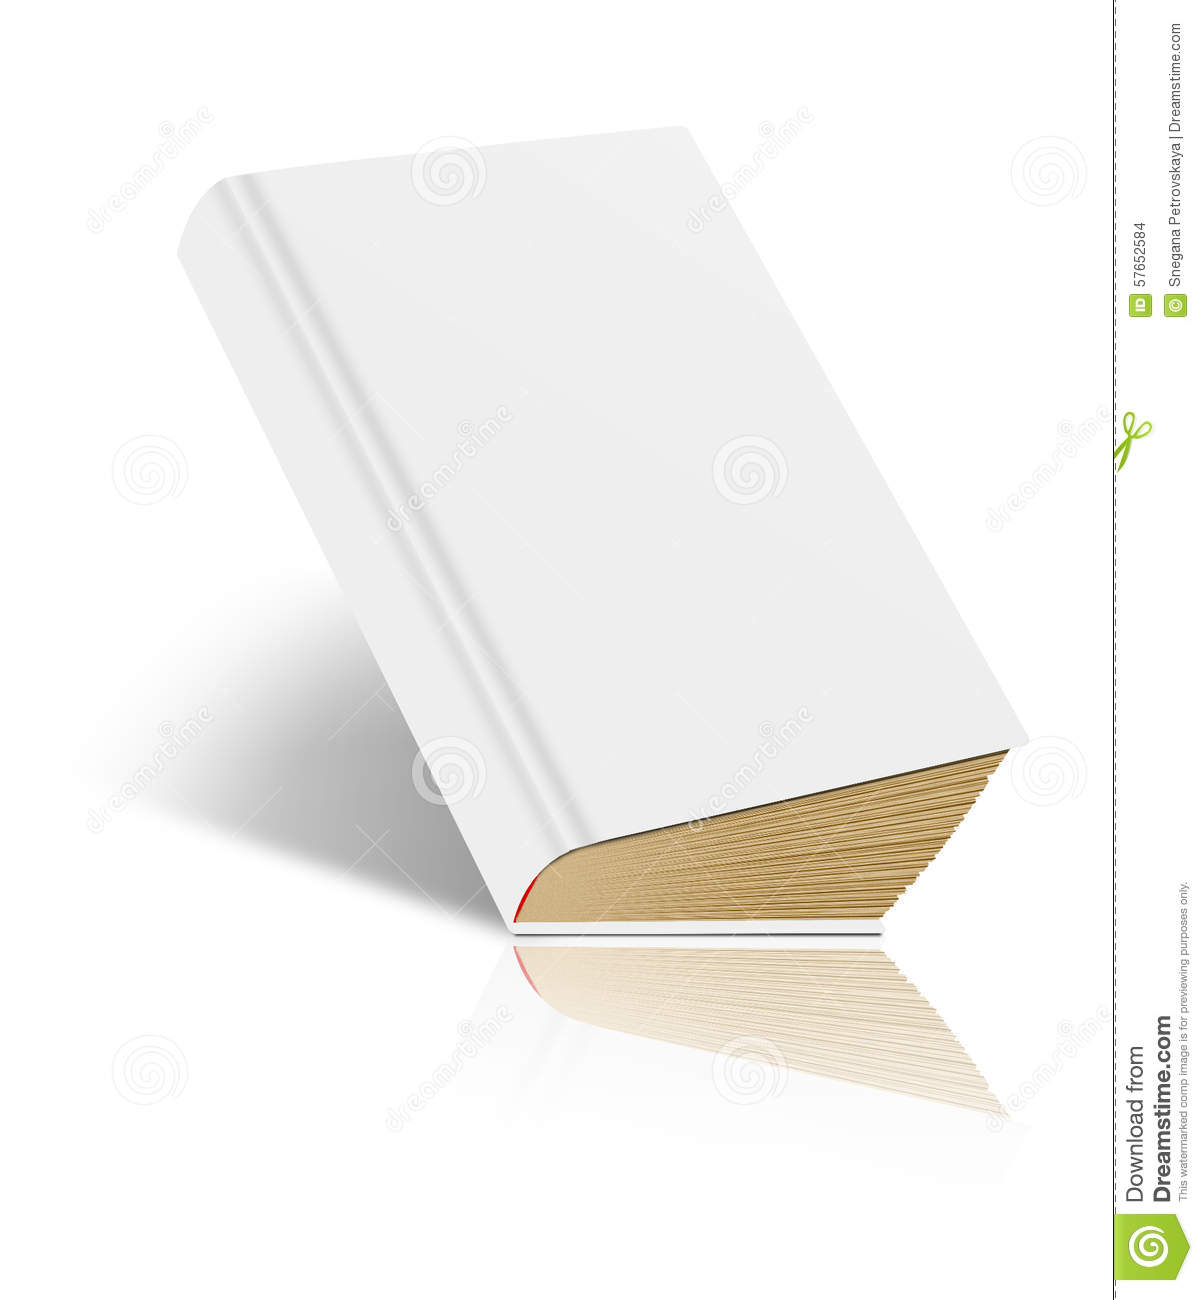 Blank book cover drawing : Isolated book stock illustration image